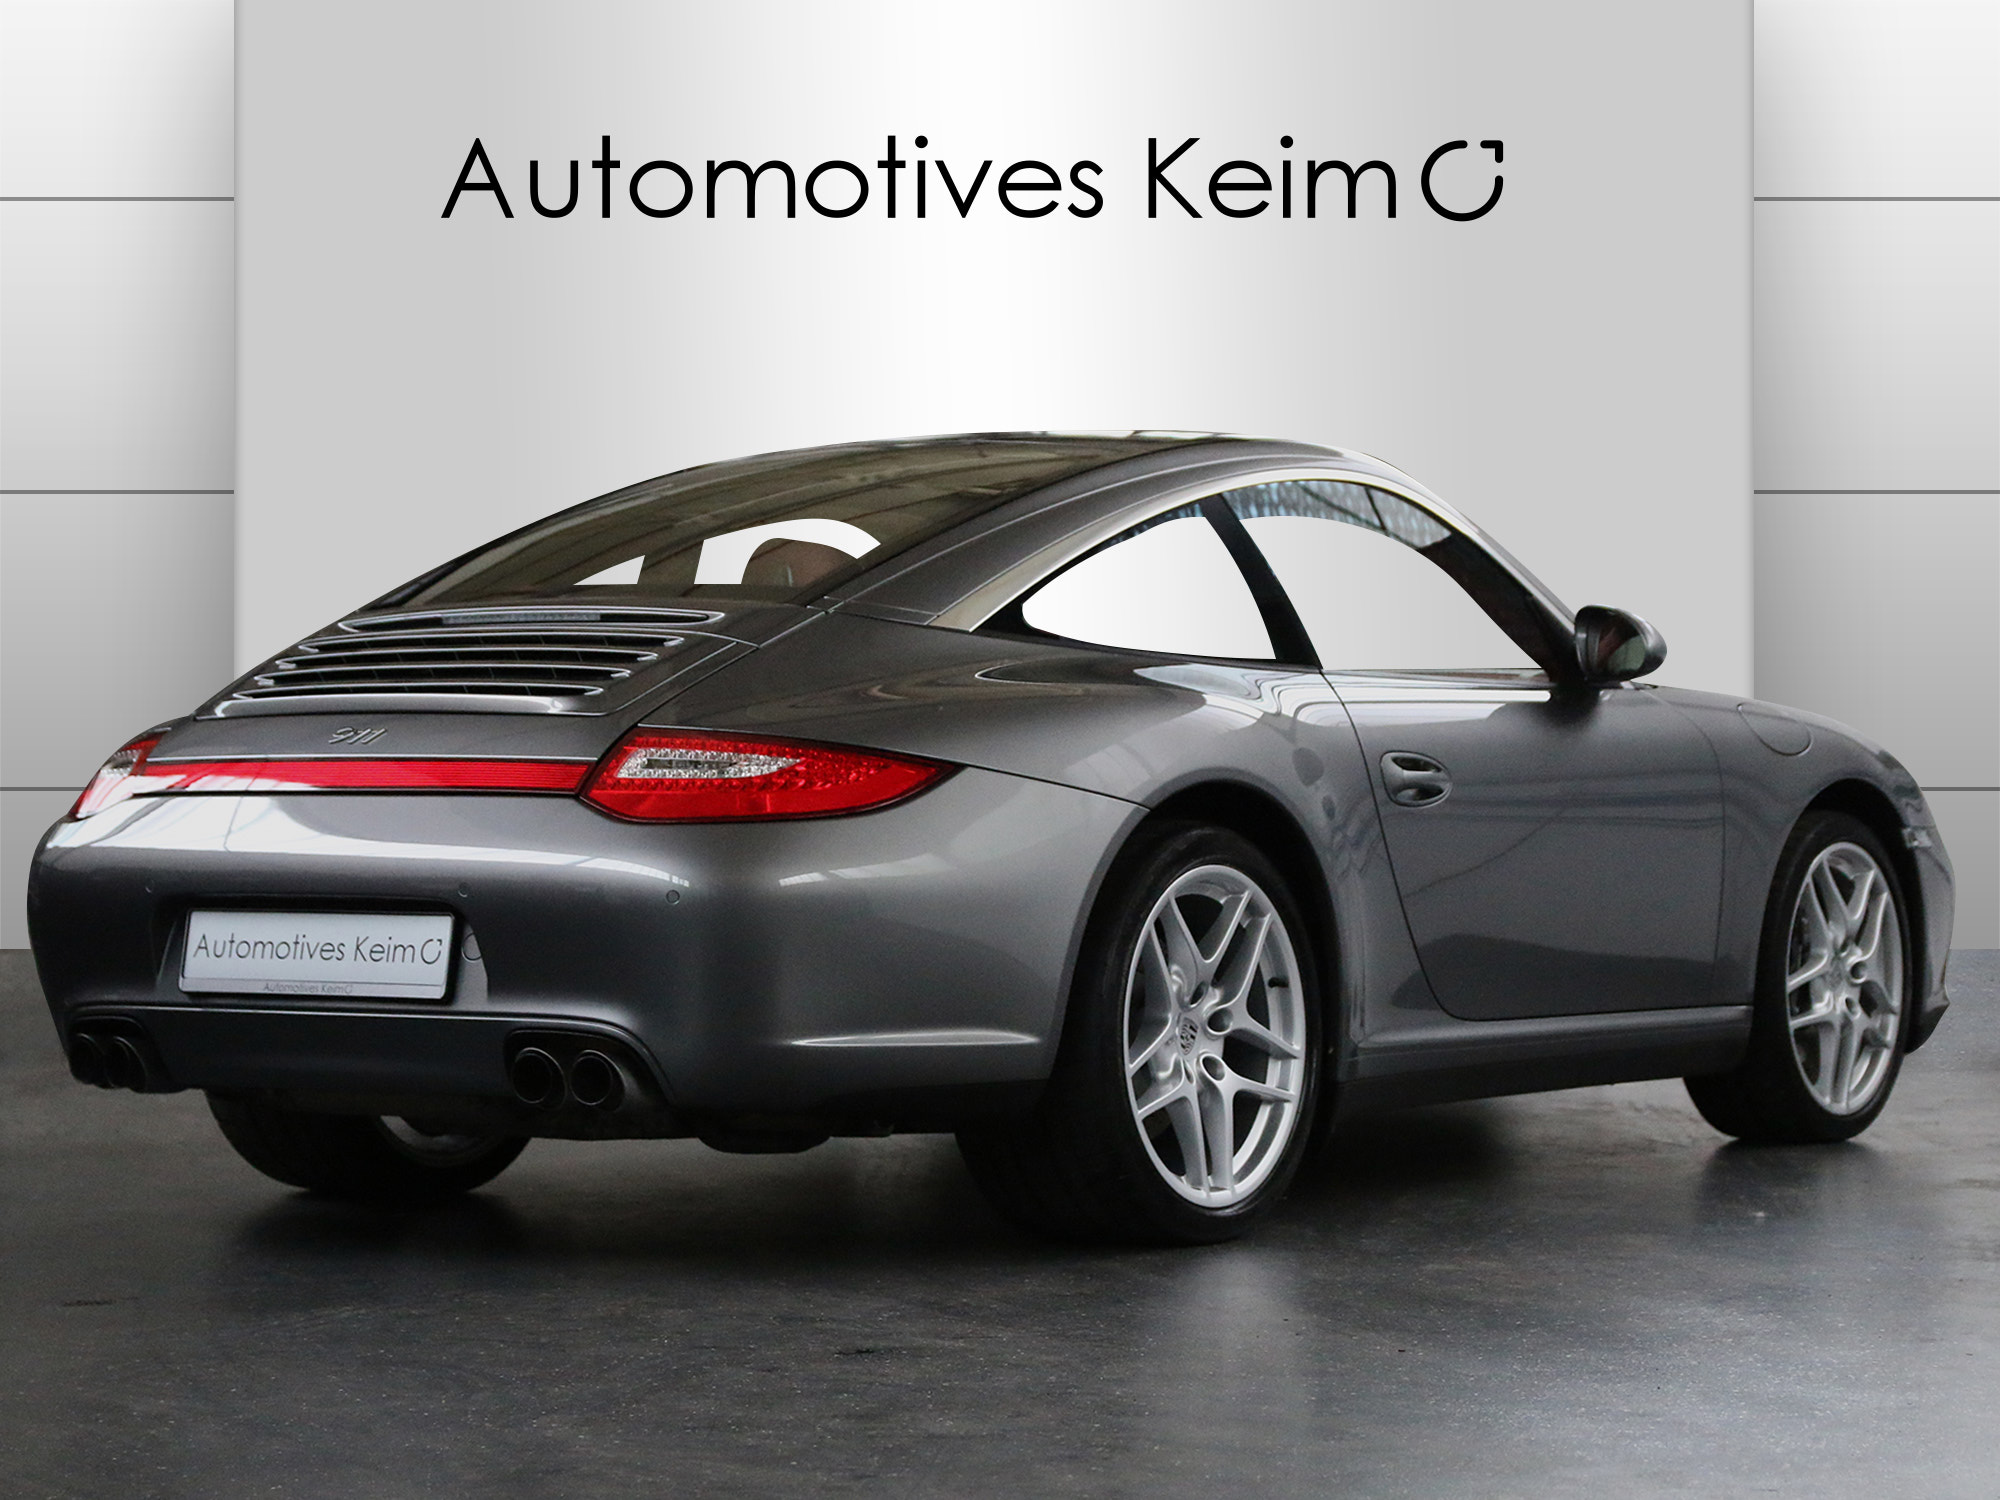 PORSCHE 911 997 Automotives Keim GmbH 63500 Seligenstadt Www.automotives Keim.de Oliver Keim 000029